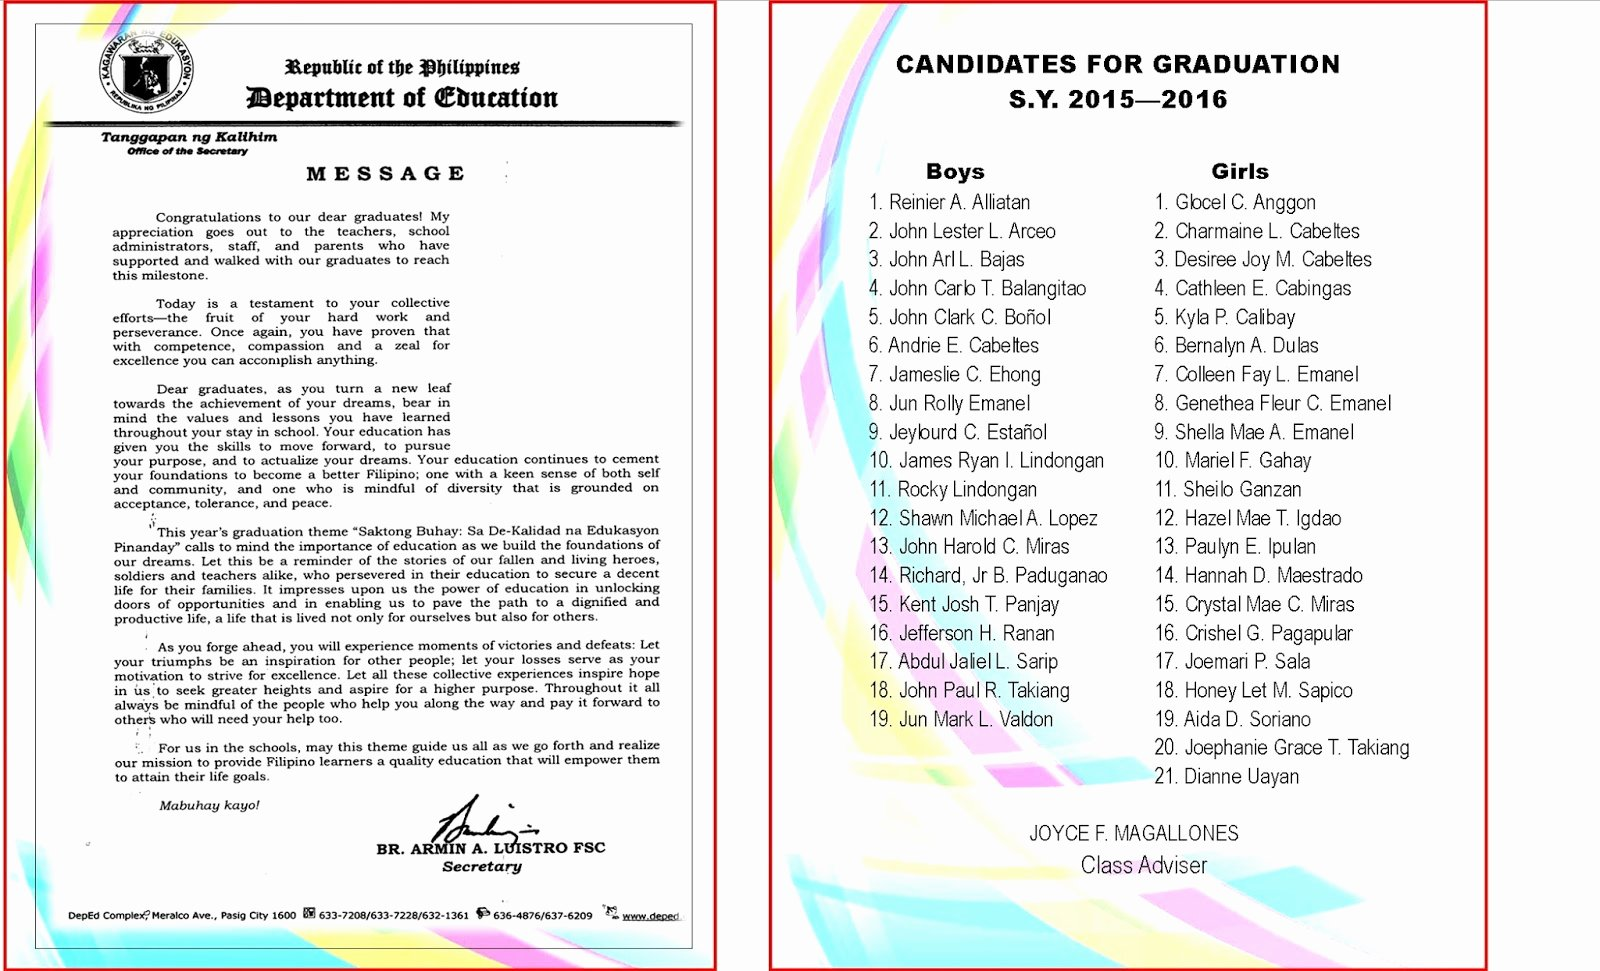 Graduation Ceremony Agenda Lovely 2015 2016 Graduation Program New Template Deped Lp S